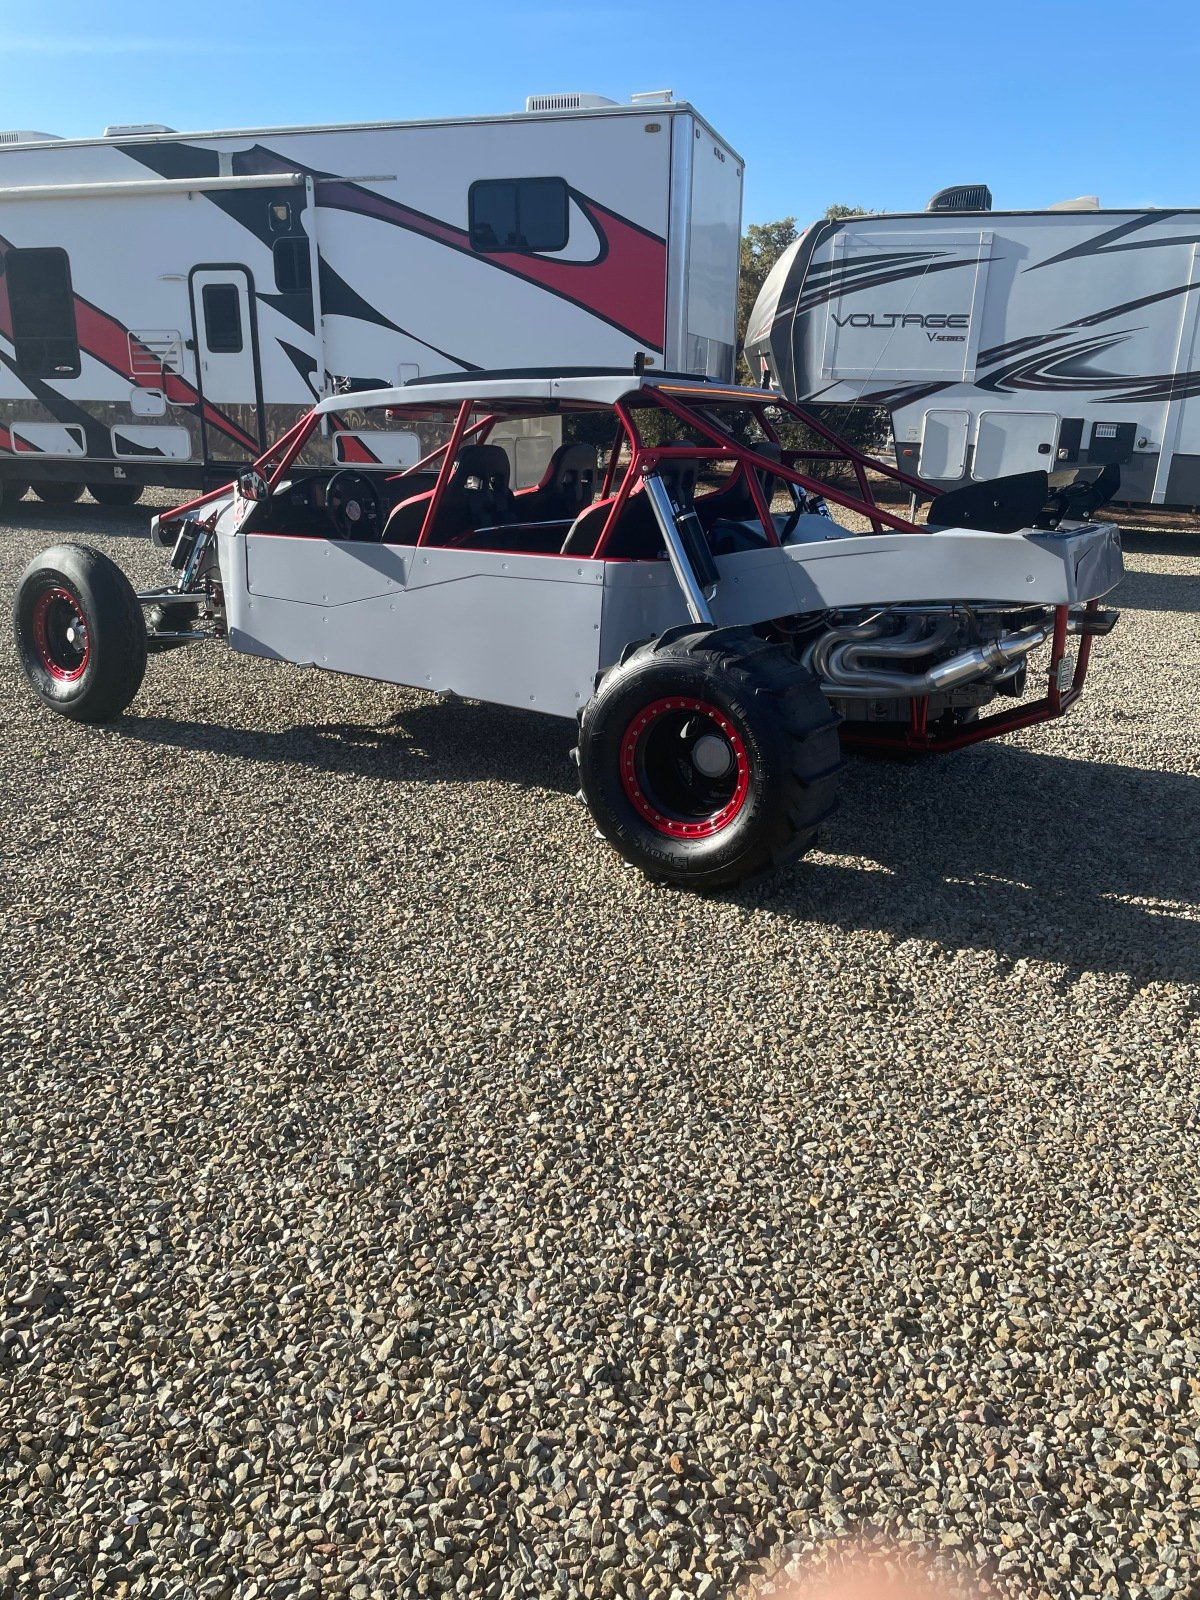 For Sale: FUNCO 4 SEATER LS2 S4 SEQUENTIAL 934'S CUSTOM BUILD - photo3